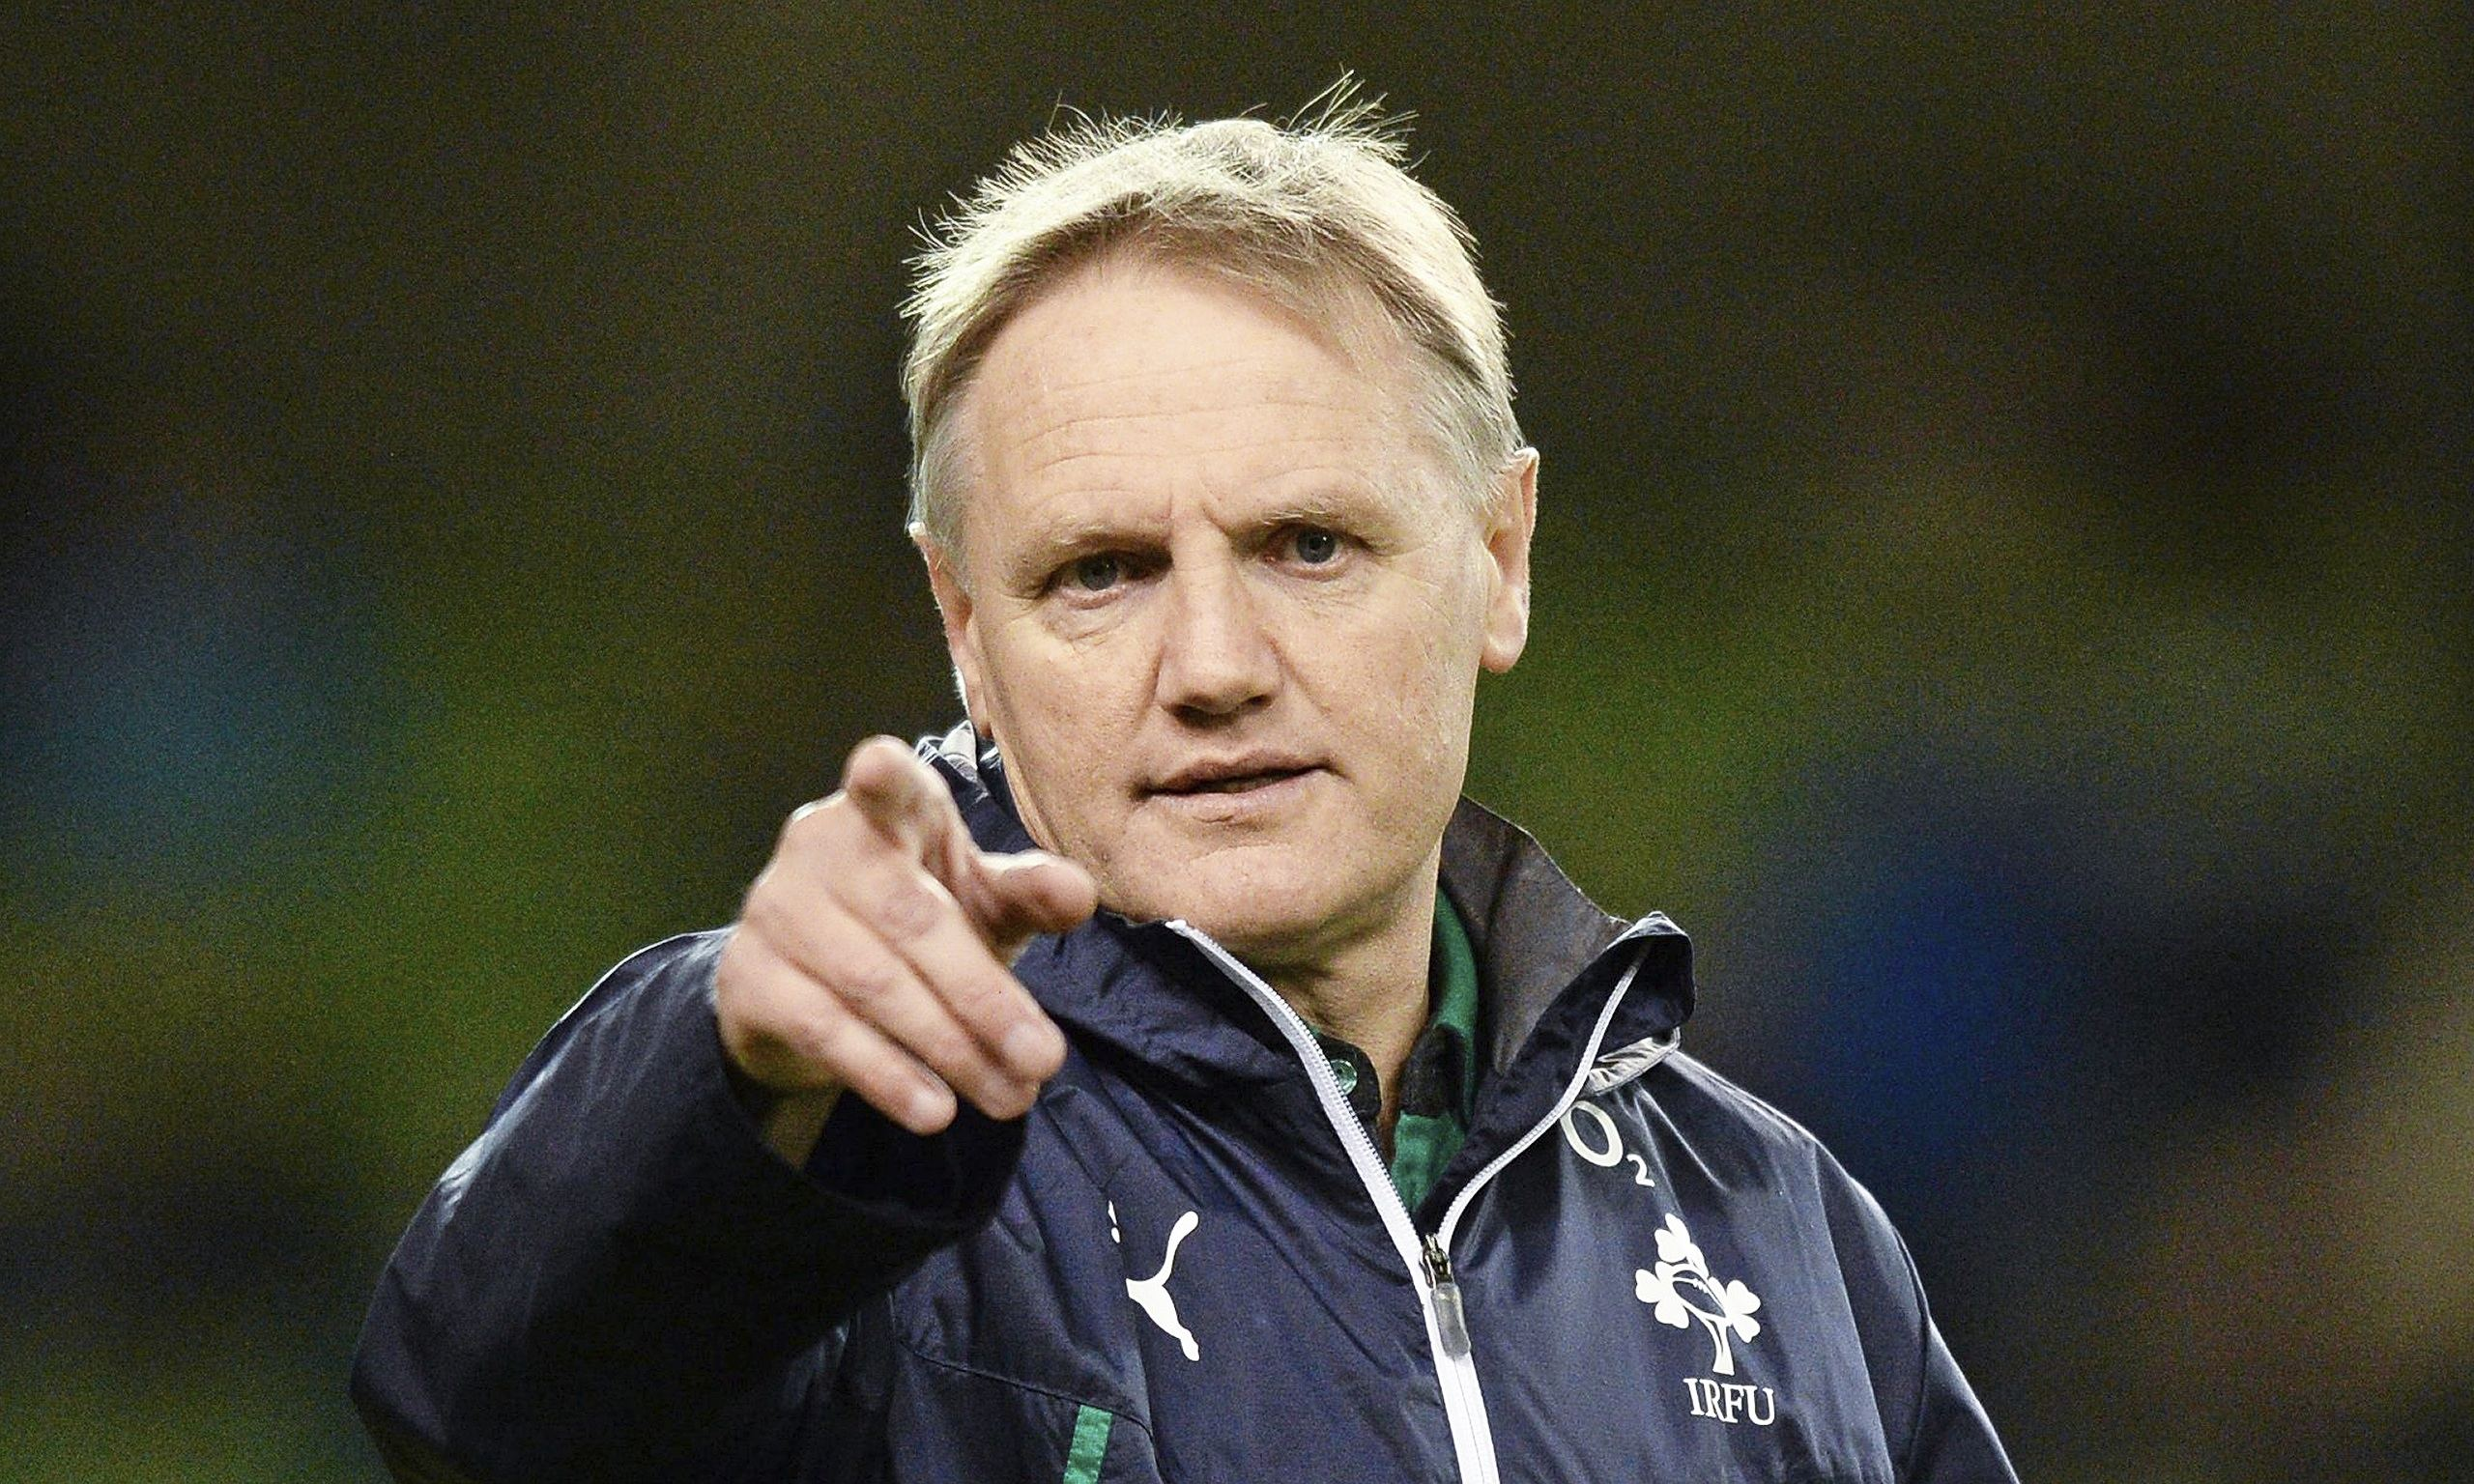 https://upload.wikimedia.org/wikipedia/commons/0/06/Joe_Schmidt_coaching_Irish_team.jpg